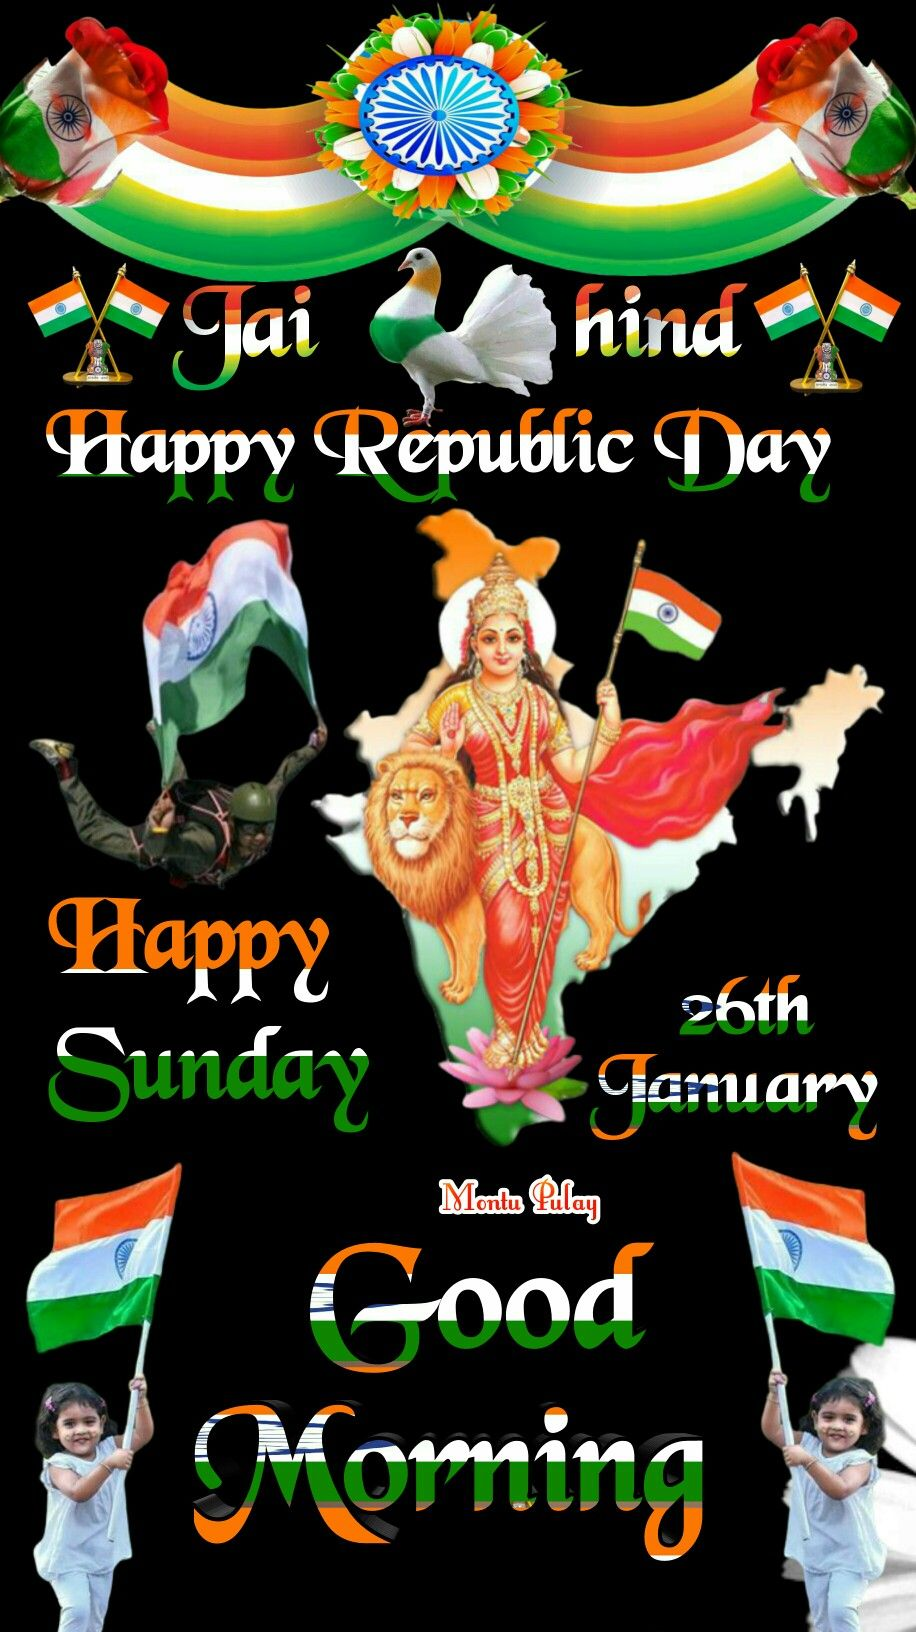 Good Morning Republic Day Comic Book Cover Comic Books Gif good morning happy republic day